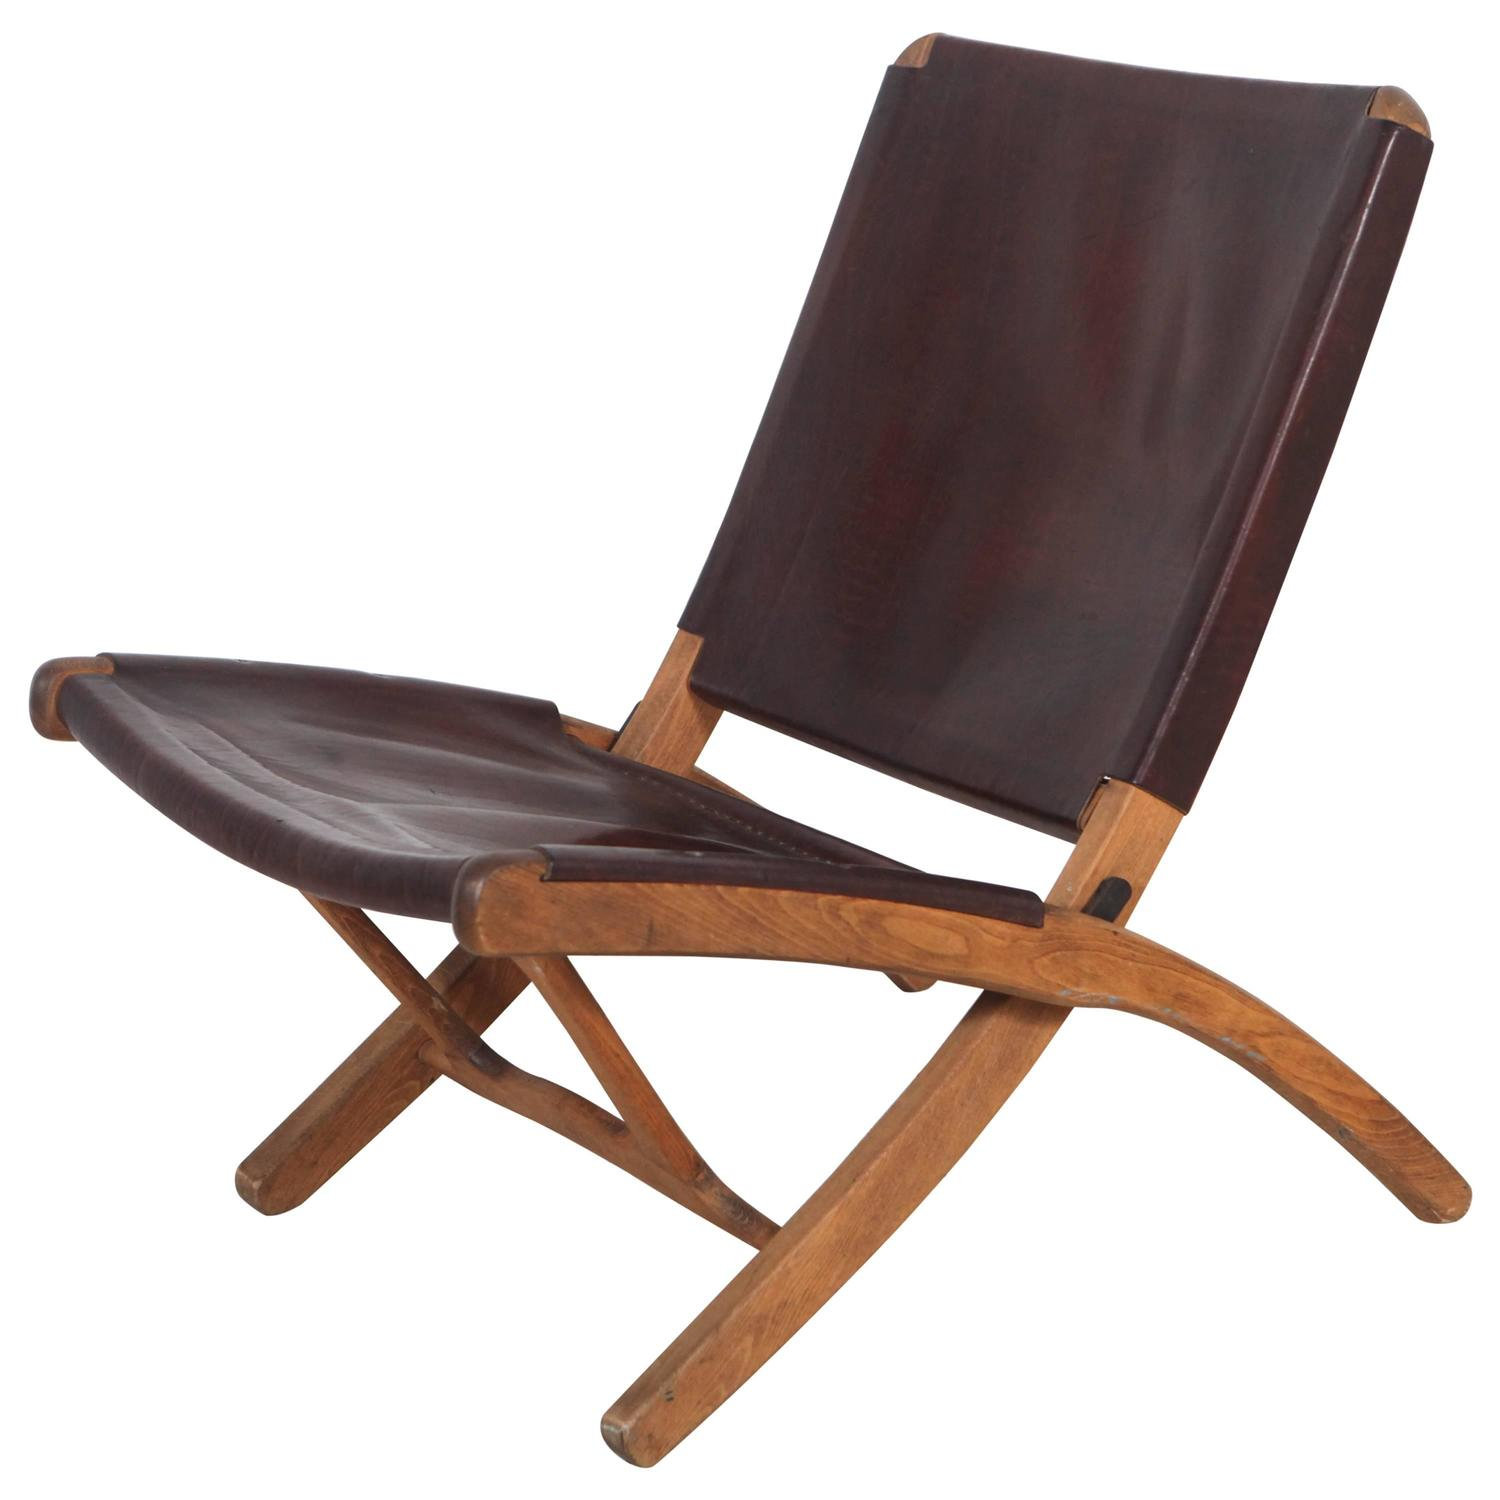 italian leather and wood folding chair at 1stdibs. Black Bedroom Furniture Sets. Home Design Ideas